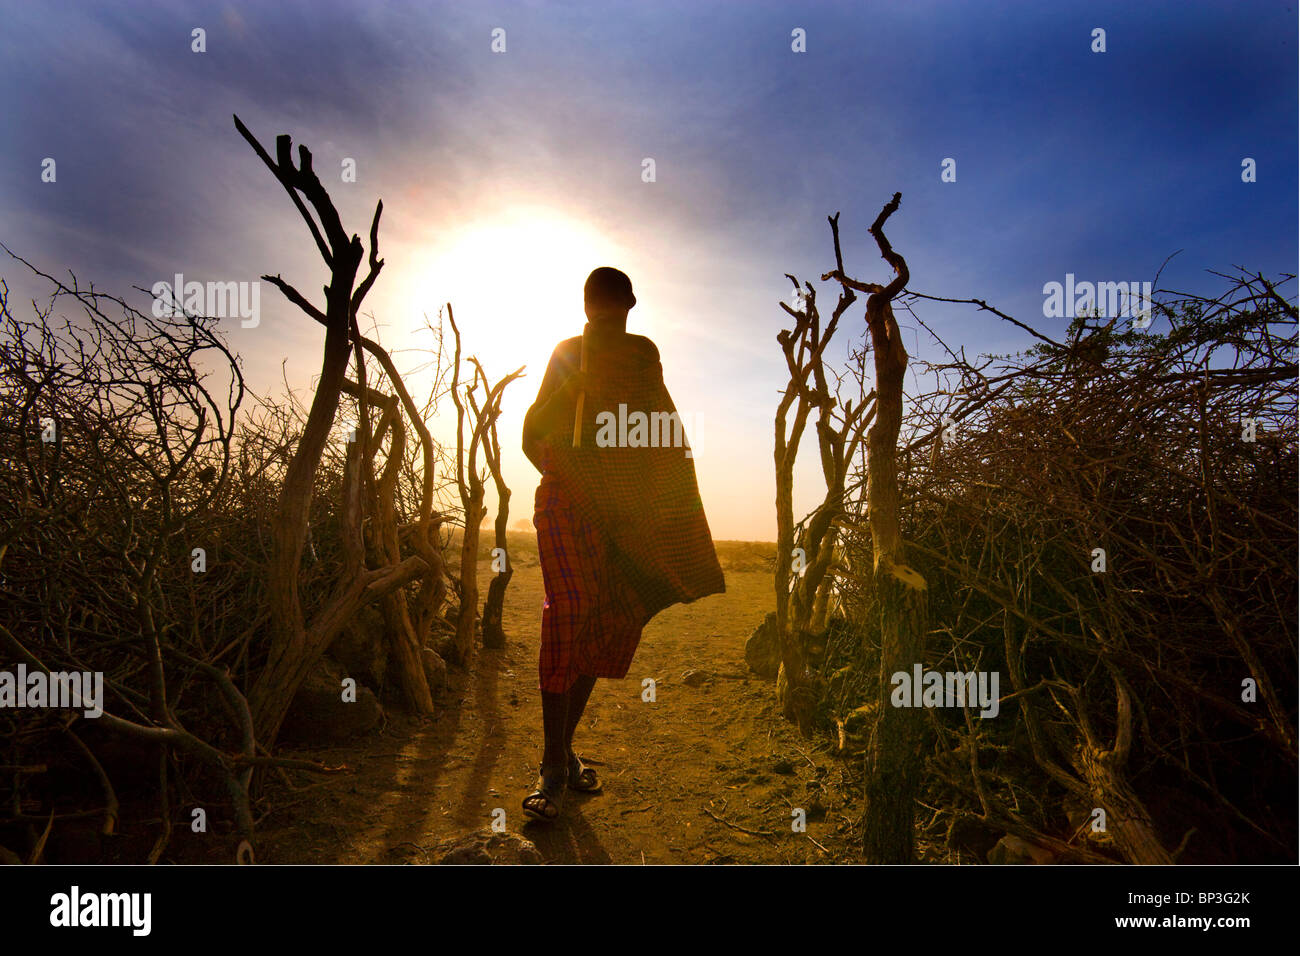 Masai villager, Masai Mara National Park, Kenya - Stock Image